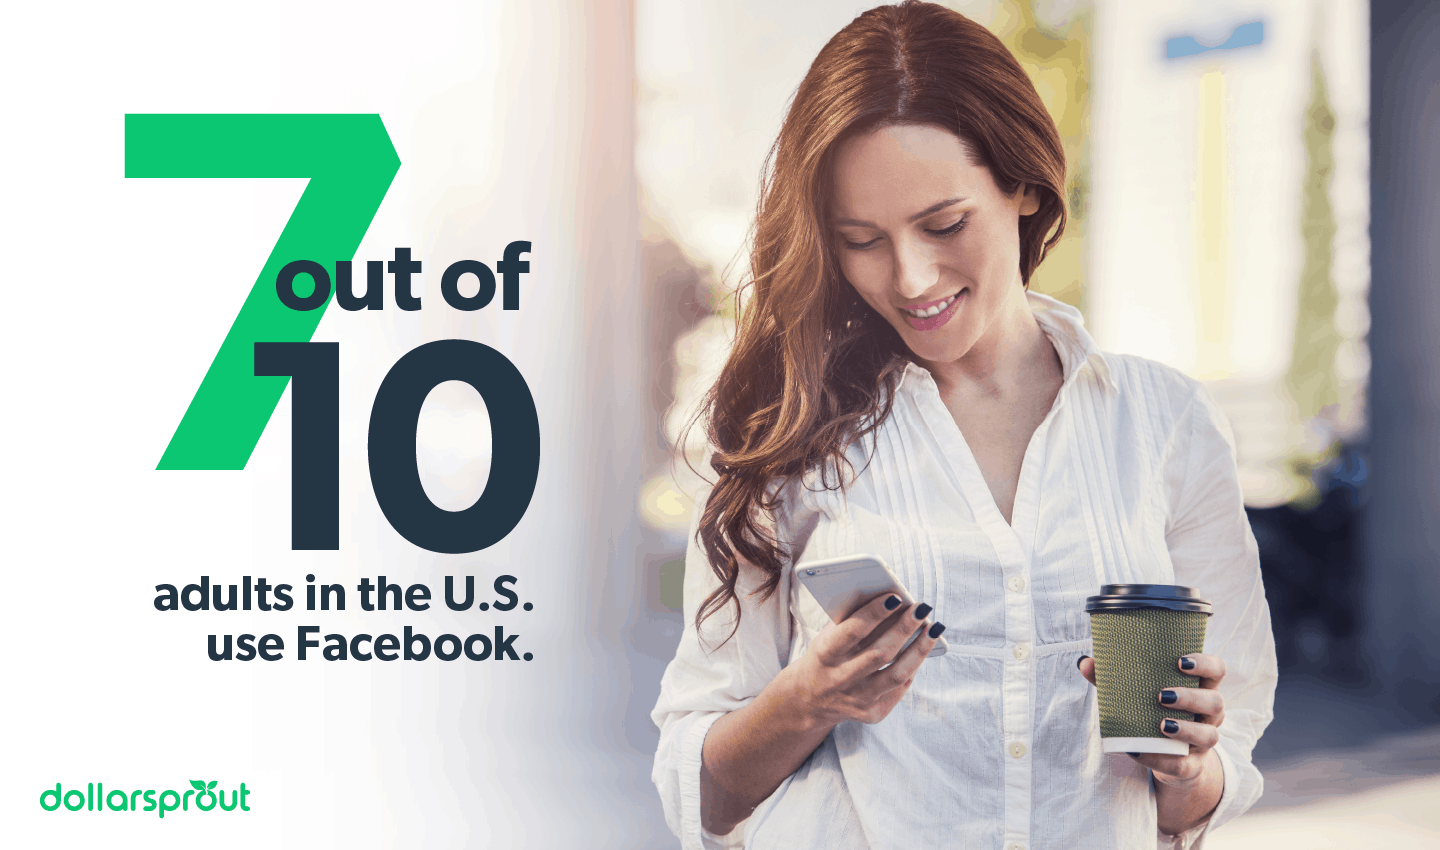 7 out of 10 adults in the U.S. use Facebook